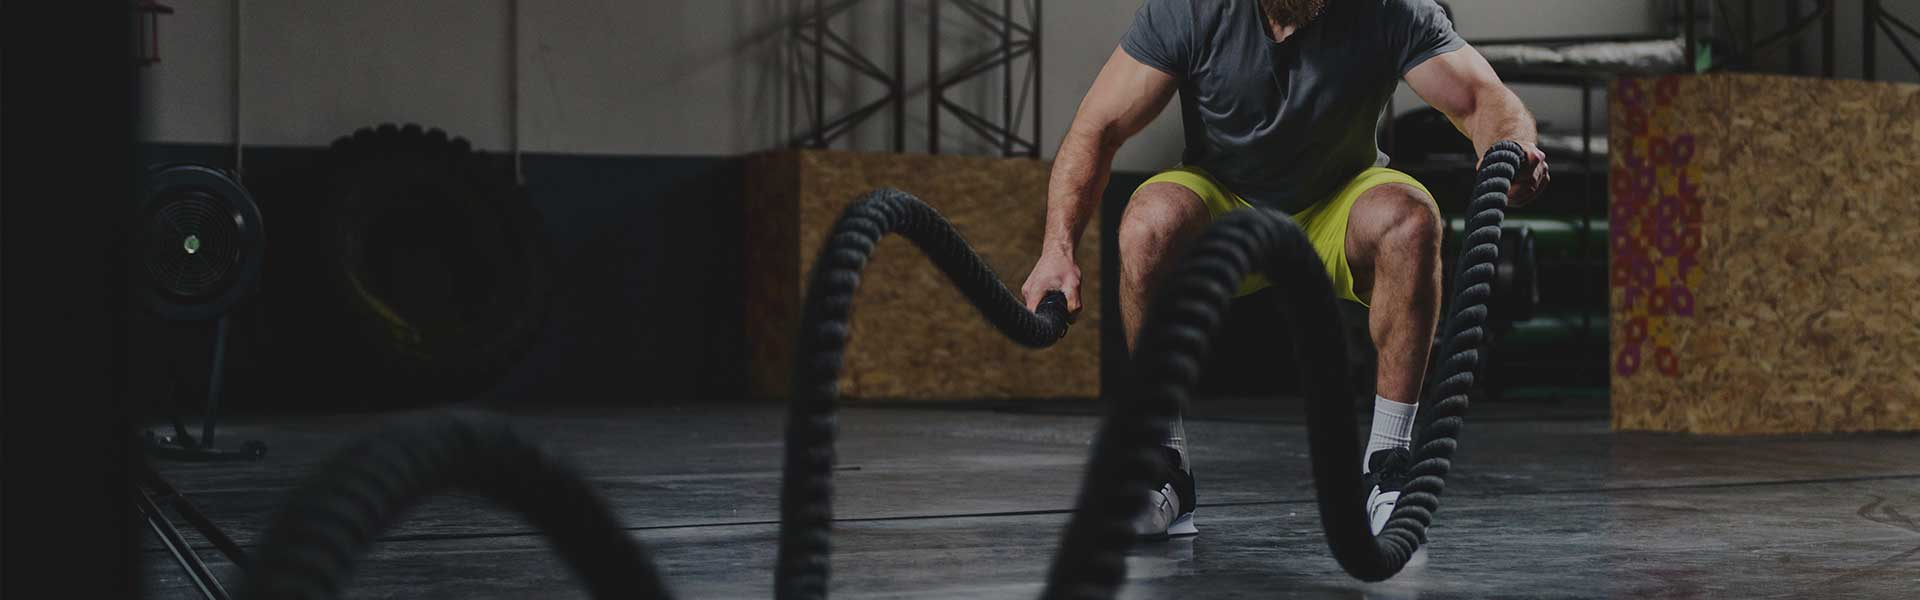 Why Become a Personal Trainer?